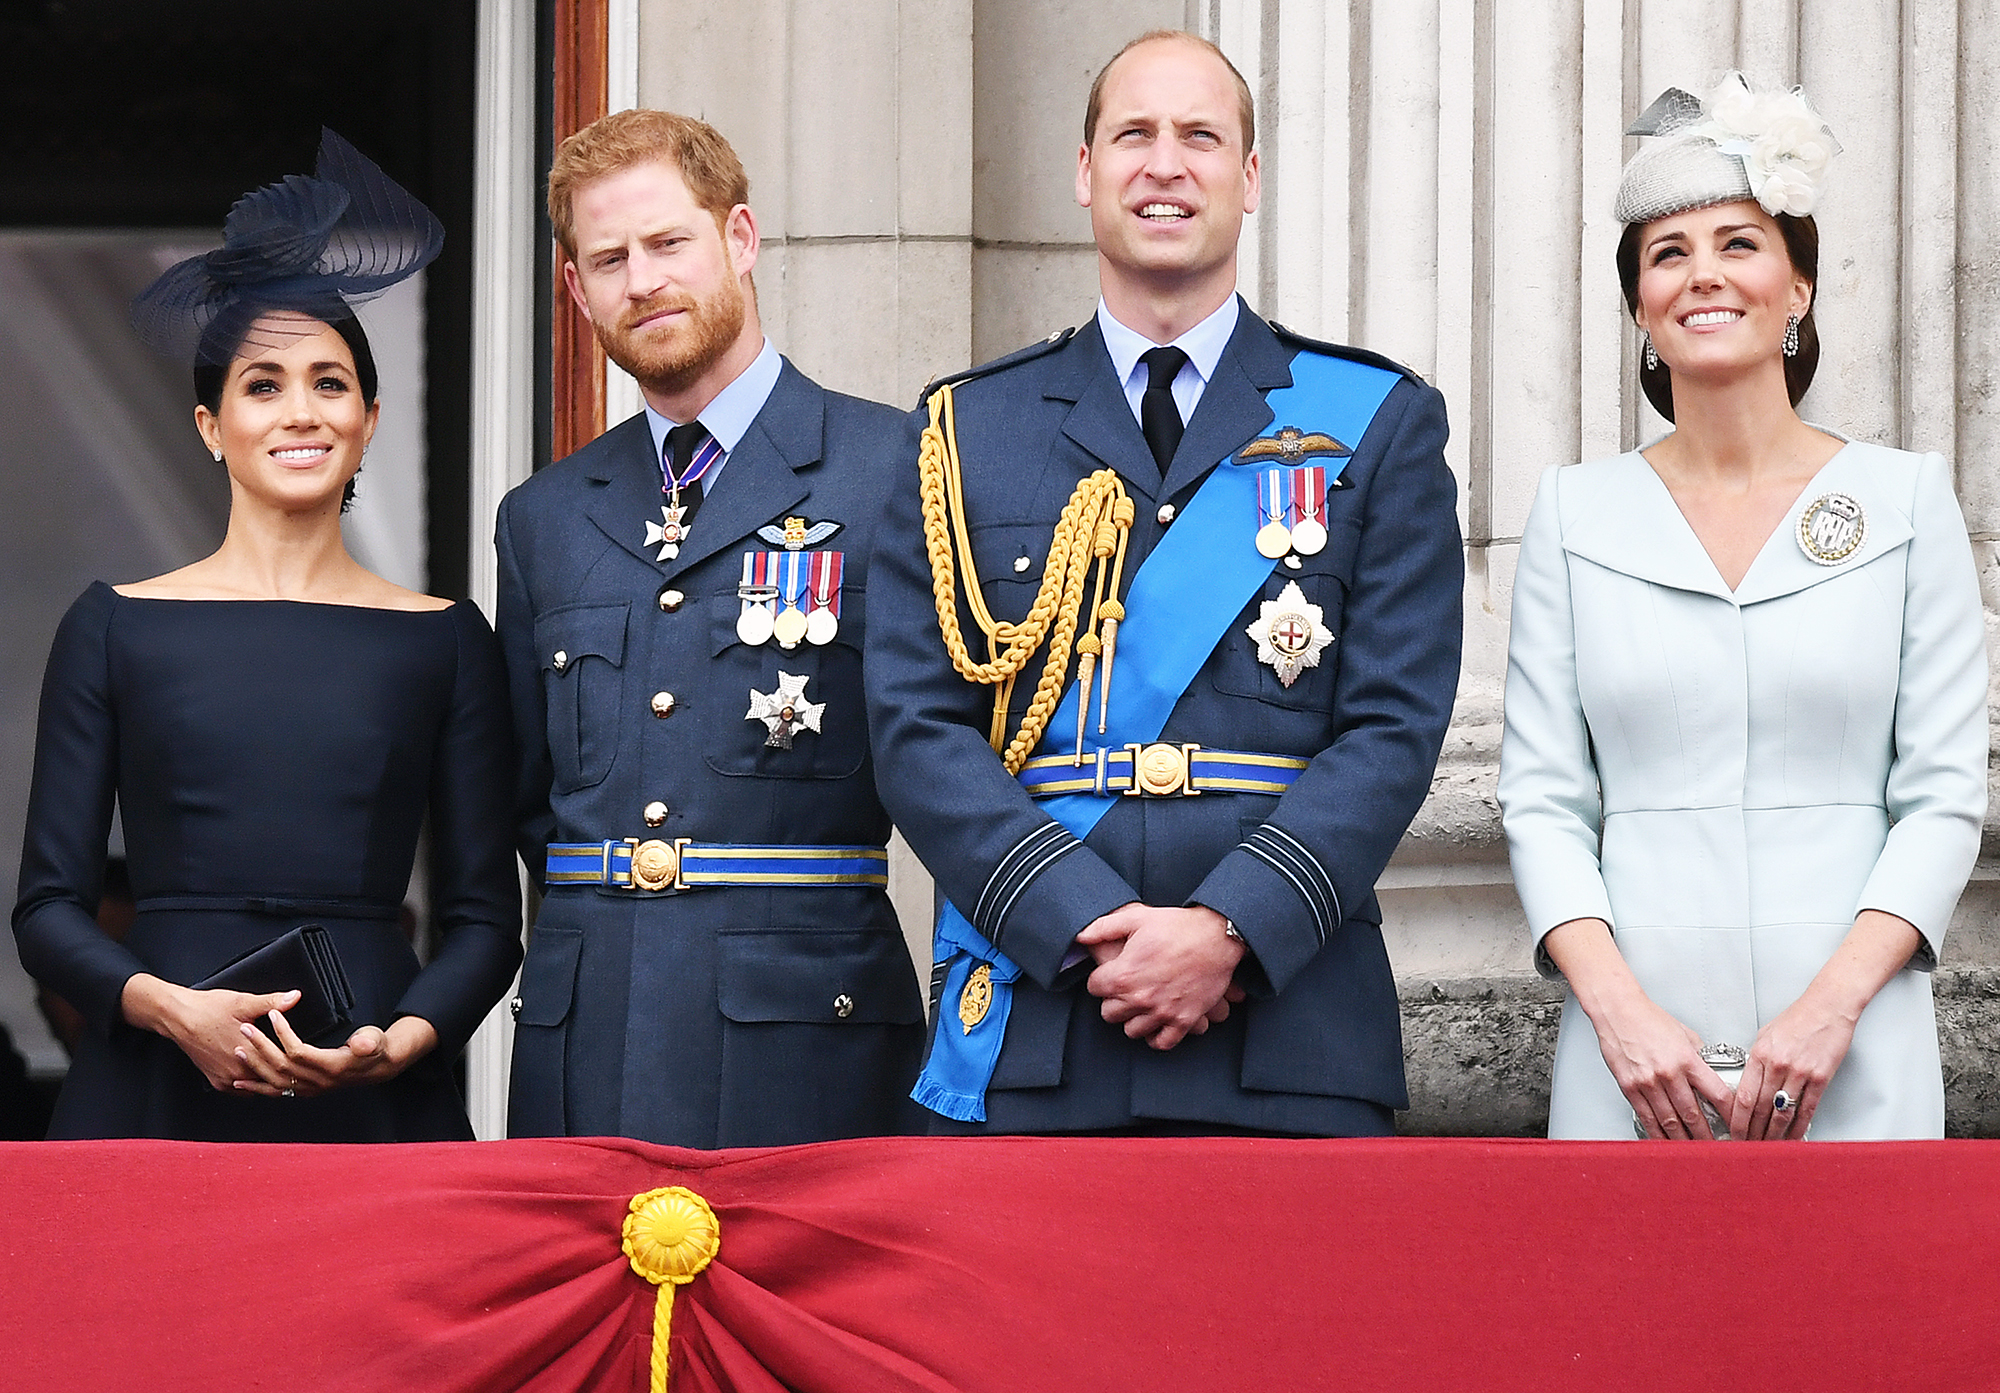 Where Prince William and Prince Harry Relationship Stands Today